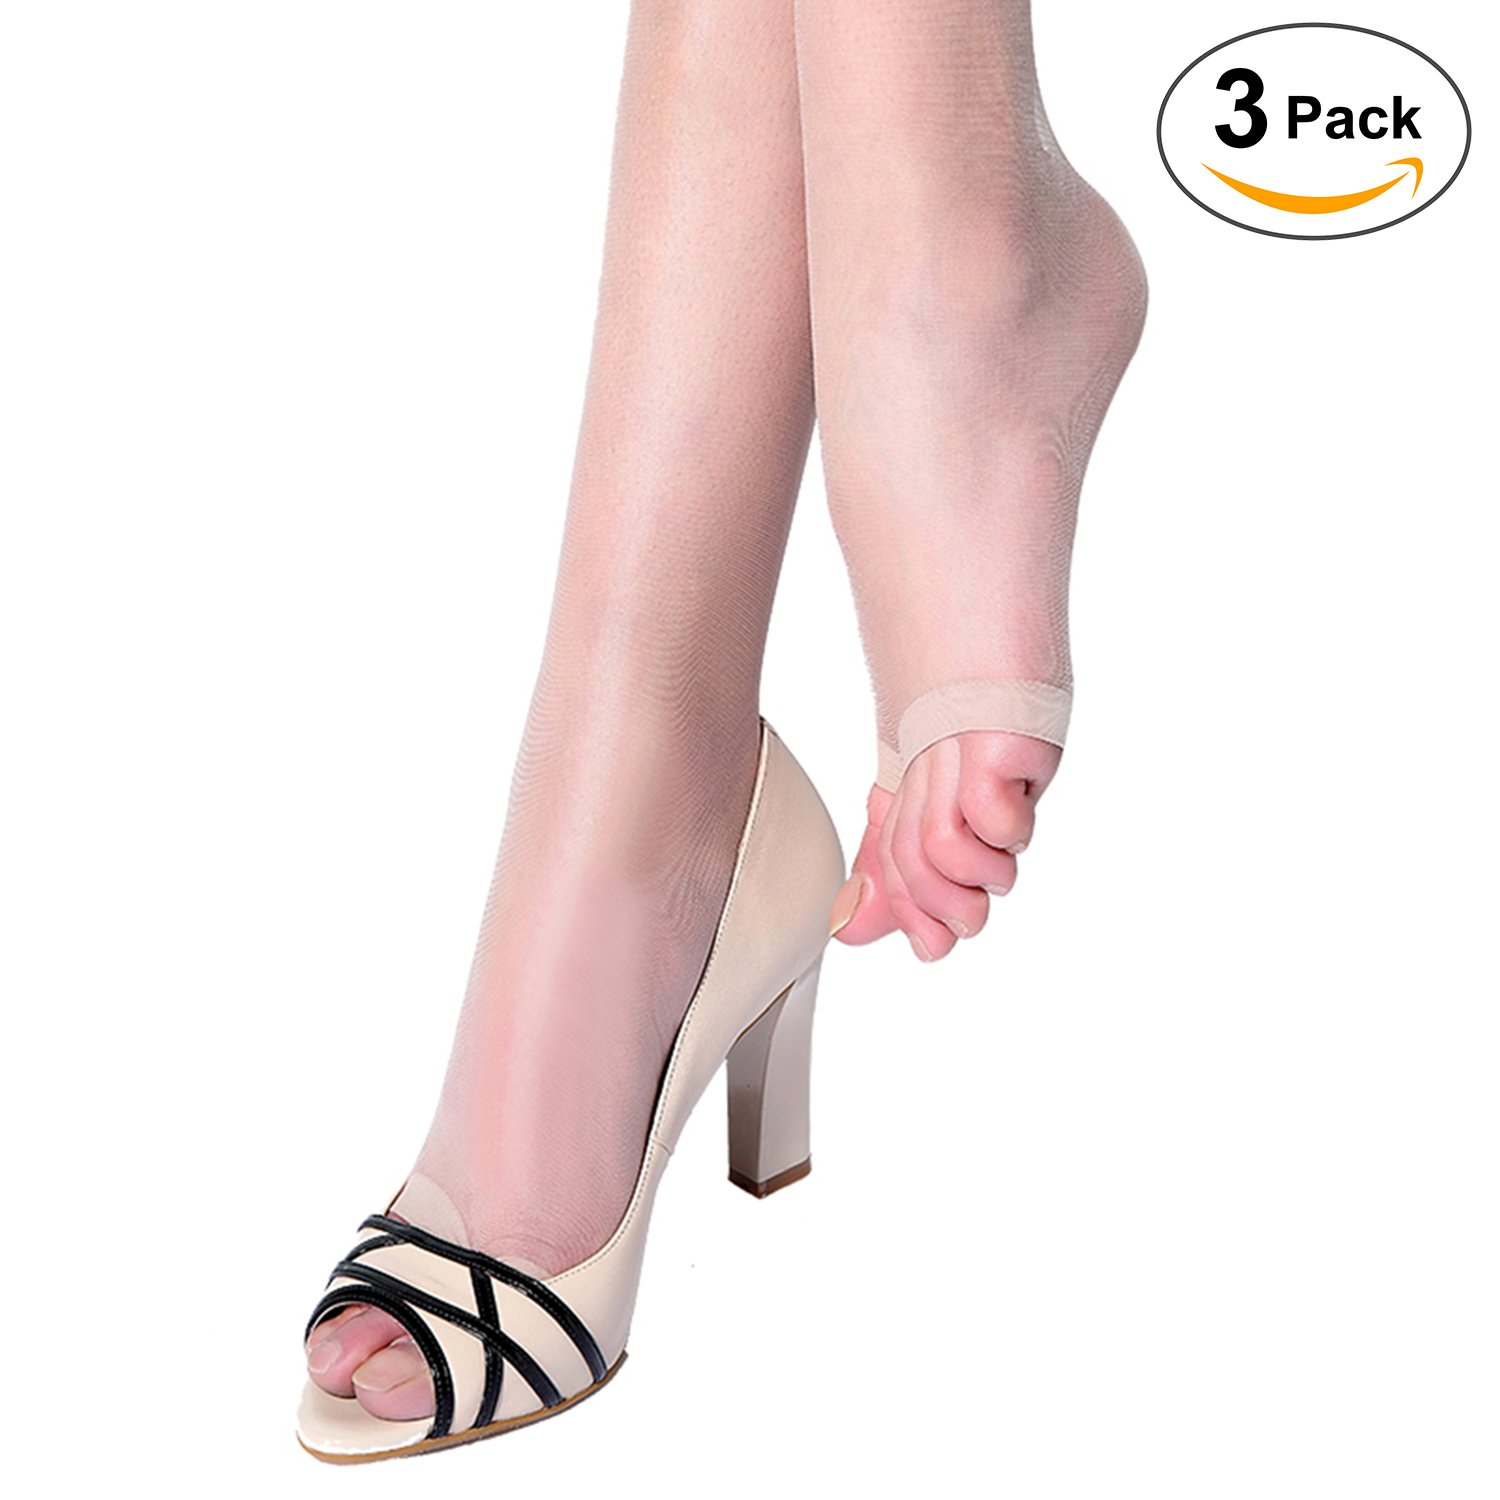 14a51a0022d Elastic closure. Estimated Delivery Time  7-15 Days Toeless for open toe  shoes-Toeless pantyhose shaper are perfect for desiring a beautiful smooth  ...